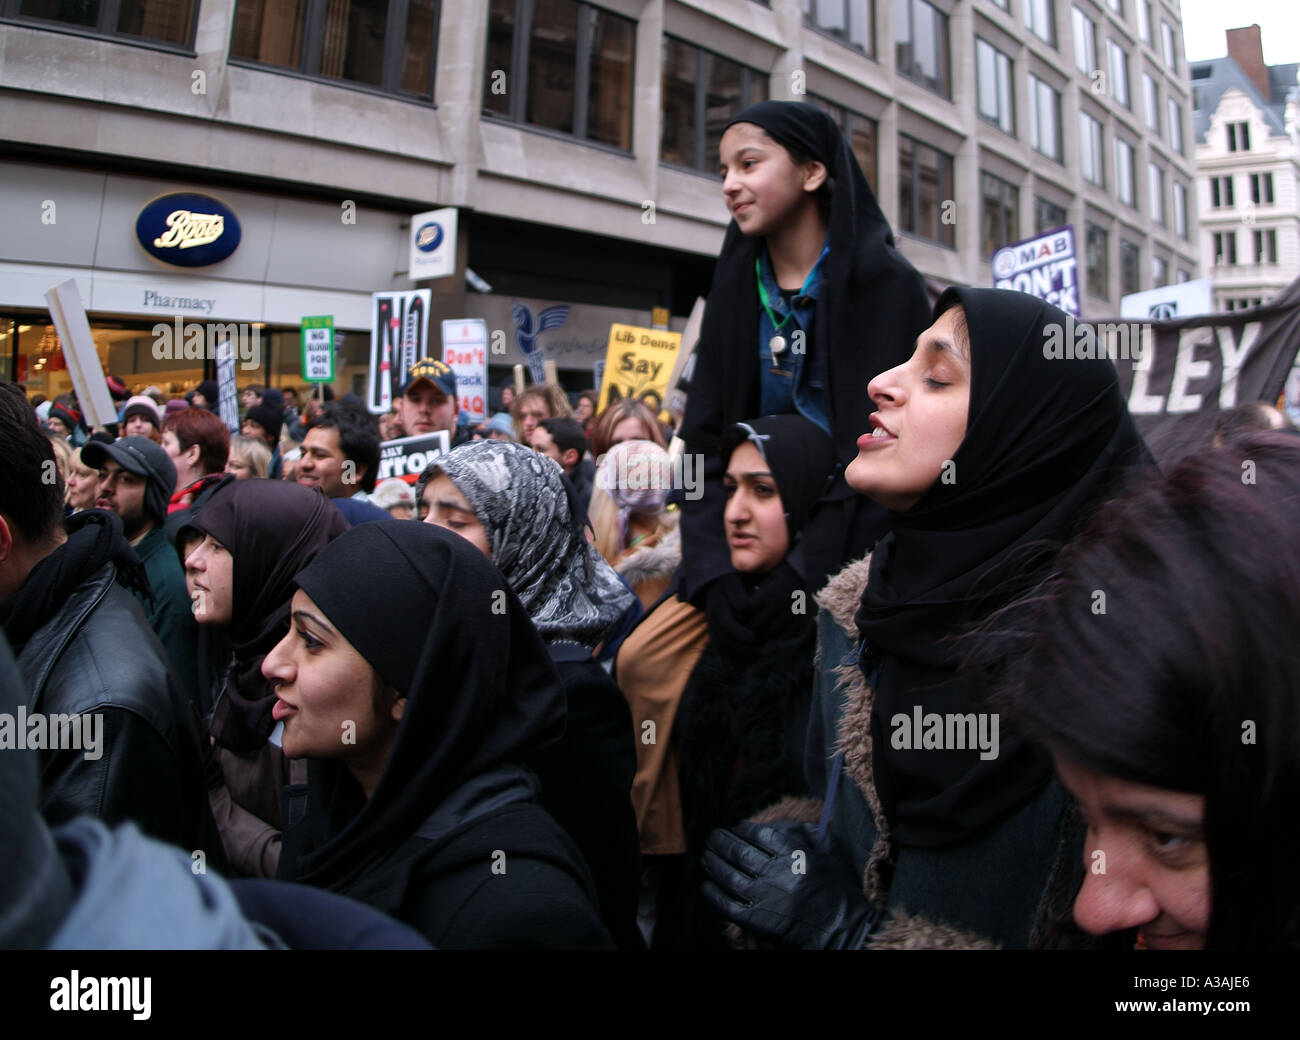 Marching Muslims - Stock Image